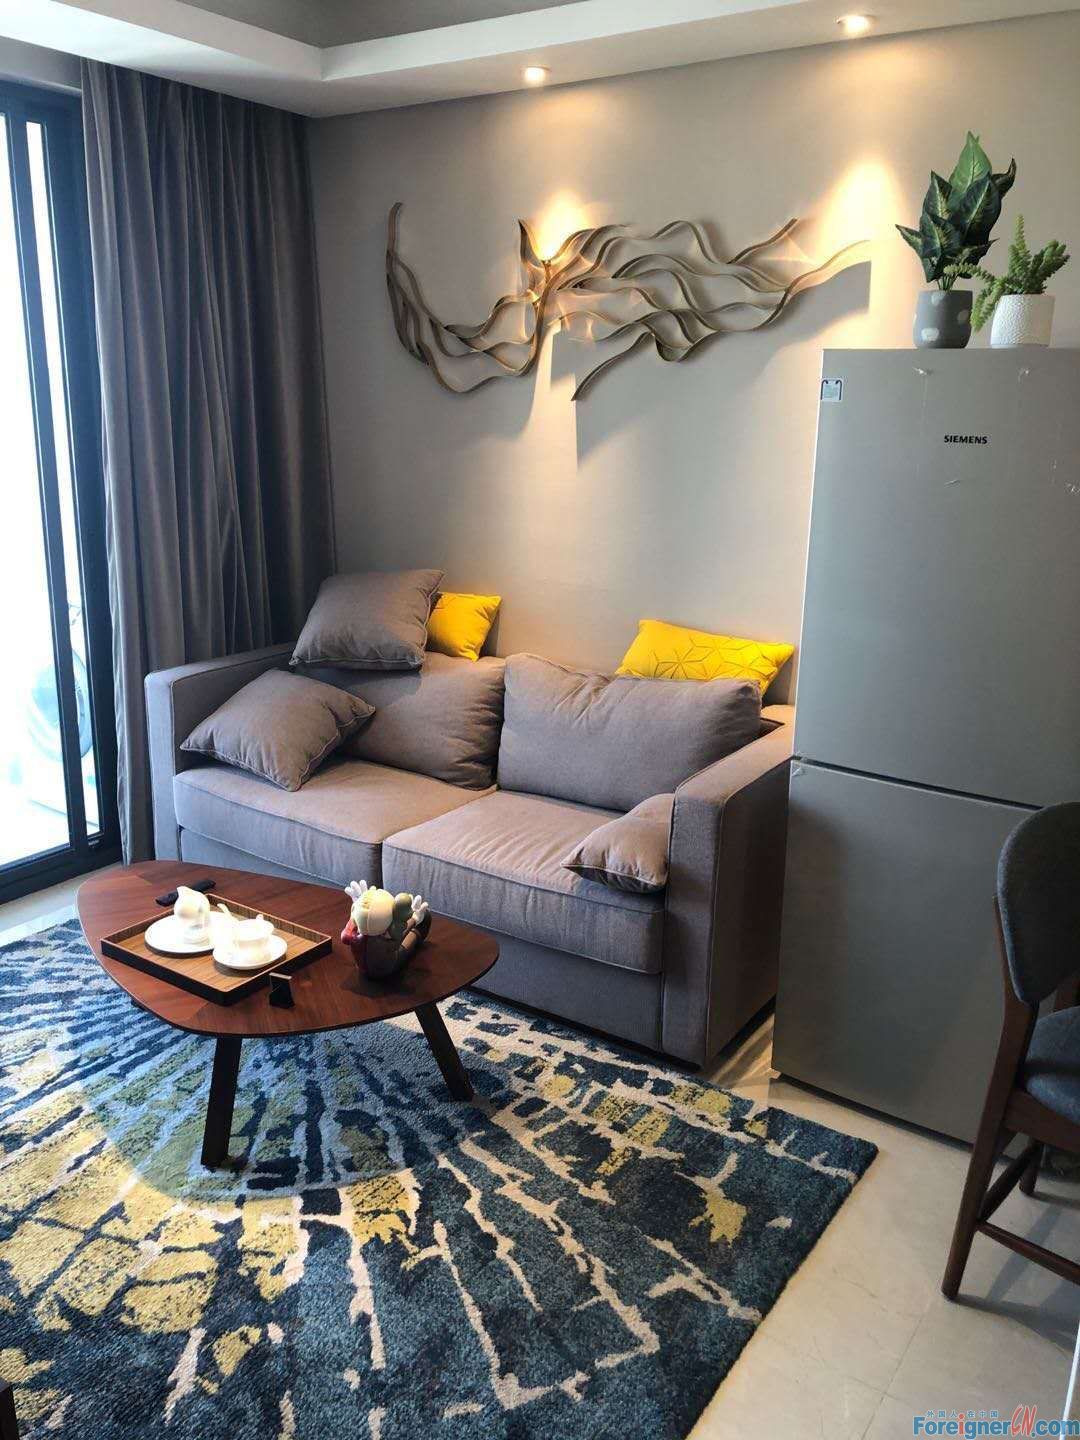 Suzhou SND/Nearby Subway Line3(Shishanlu Station)/Close to Longhu Tianjie/1 Bedroom, 1 Living Room and 1 Bathroom/Modern Western Decoration/Bright and Homely